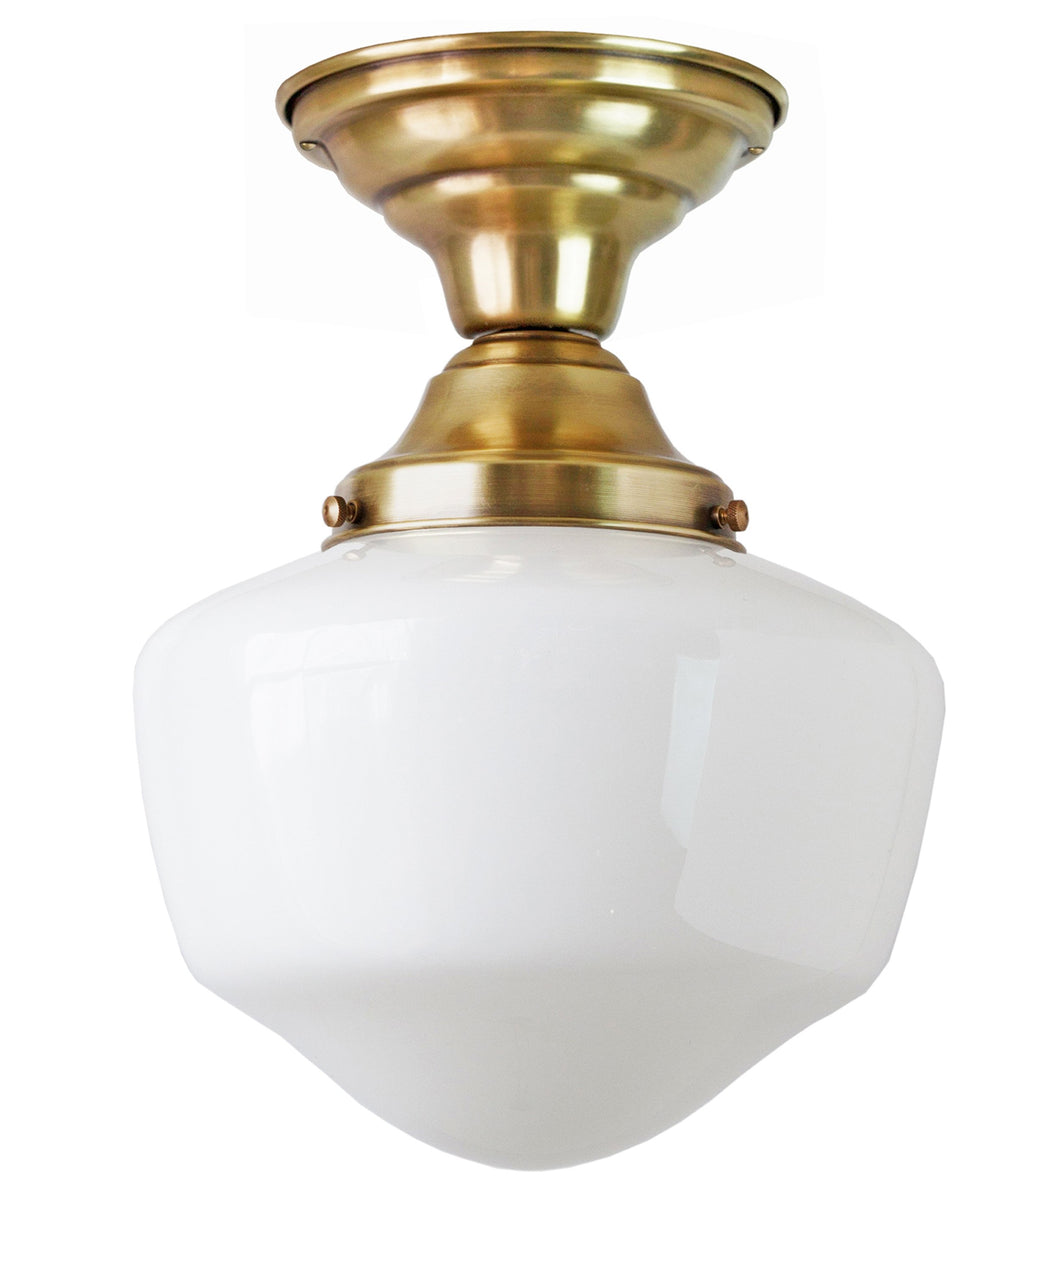 Traditional Schoolhouse Ceiling Fixture, 8